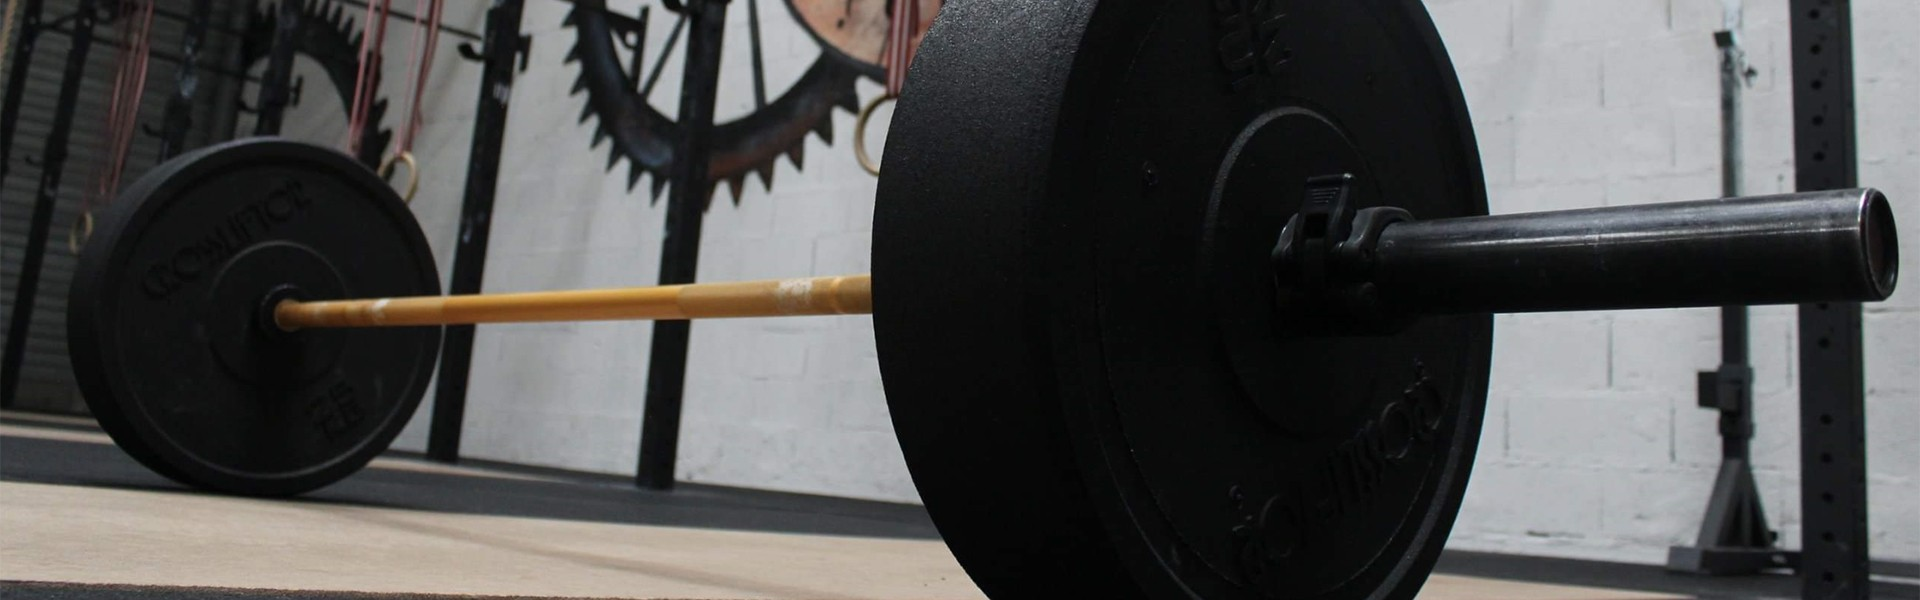 WEIGHTLIFTING BARBELLS AND PLATES